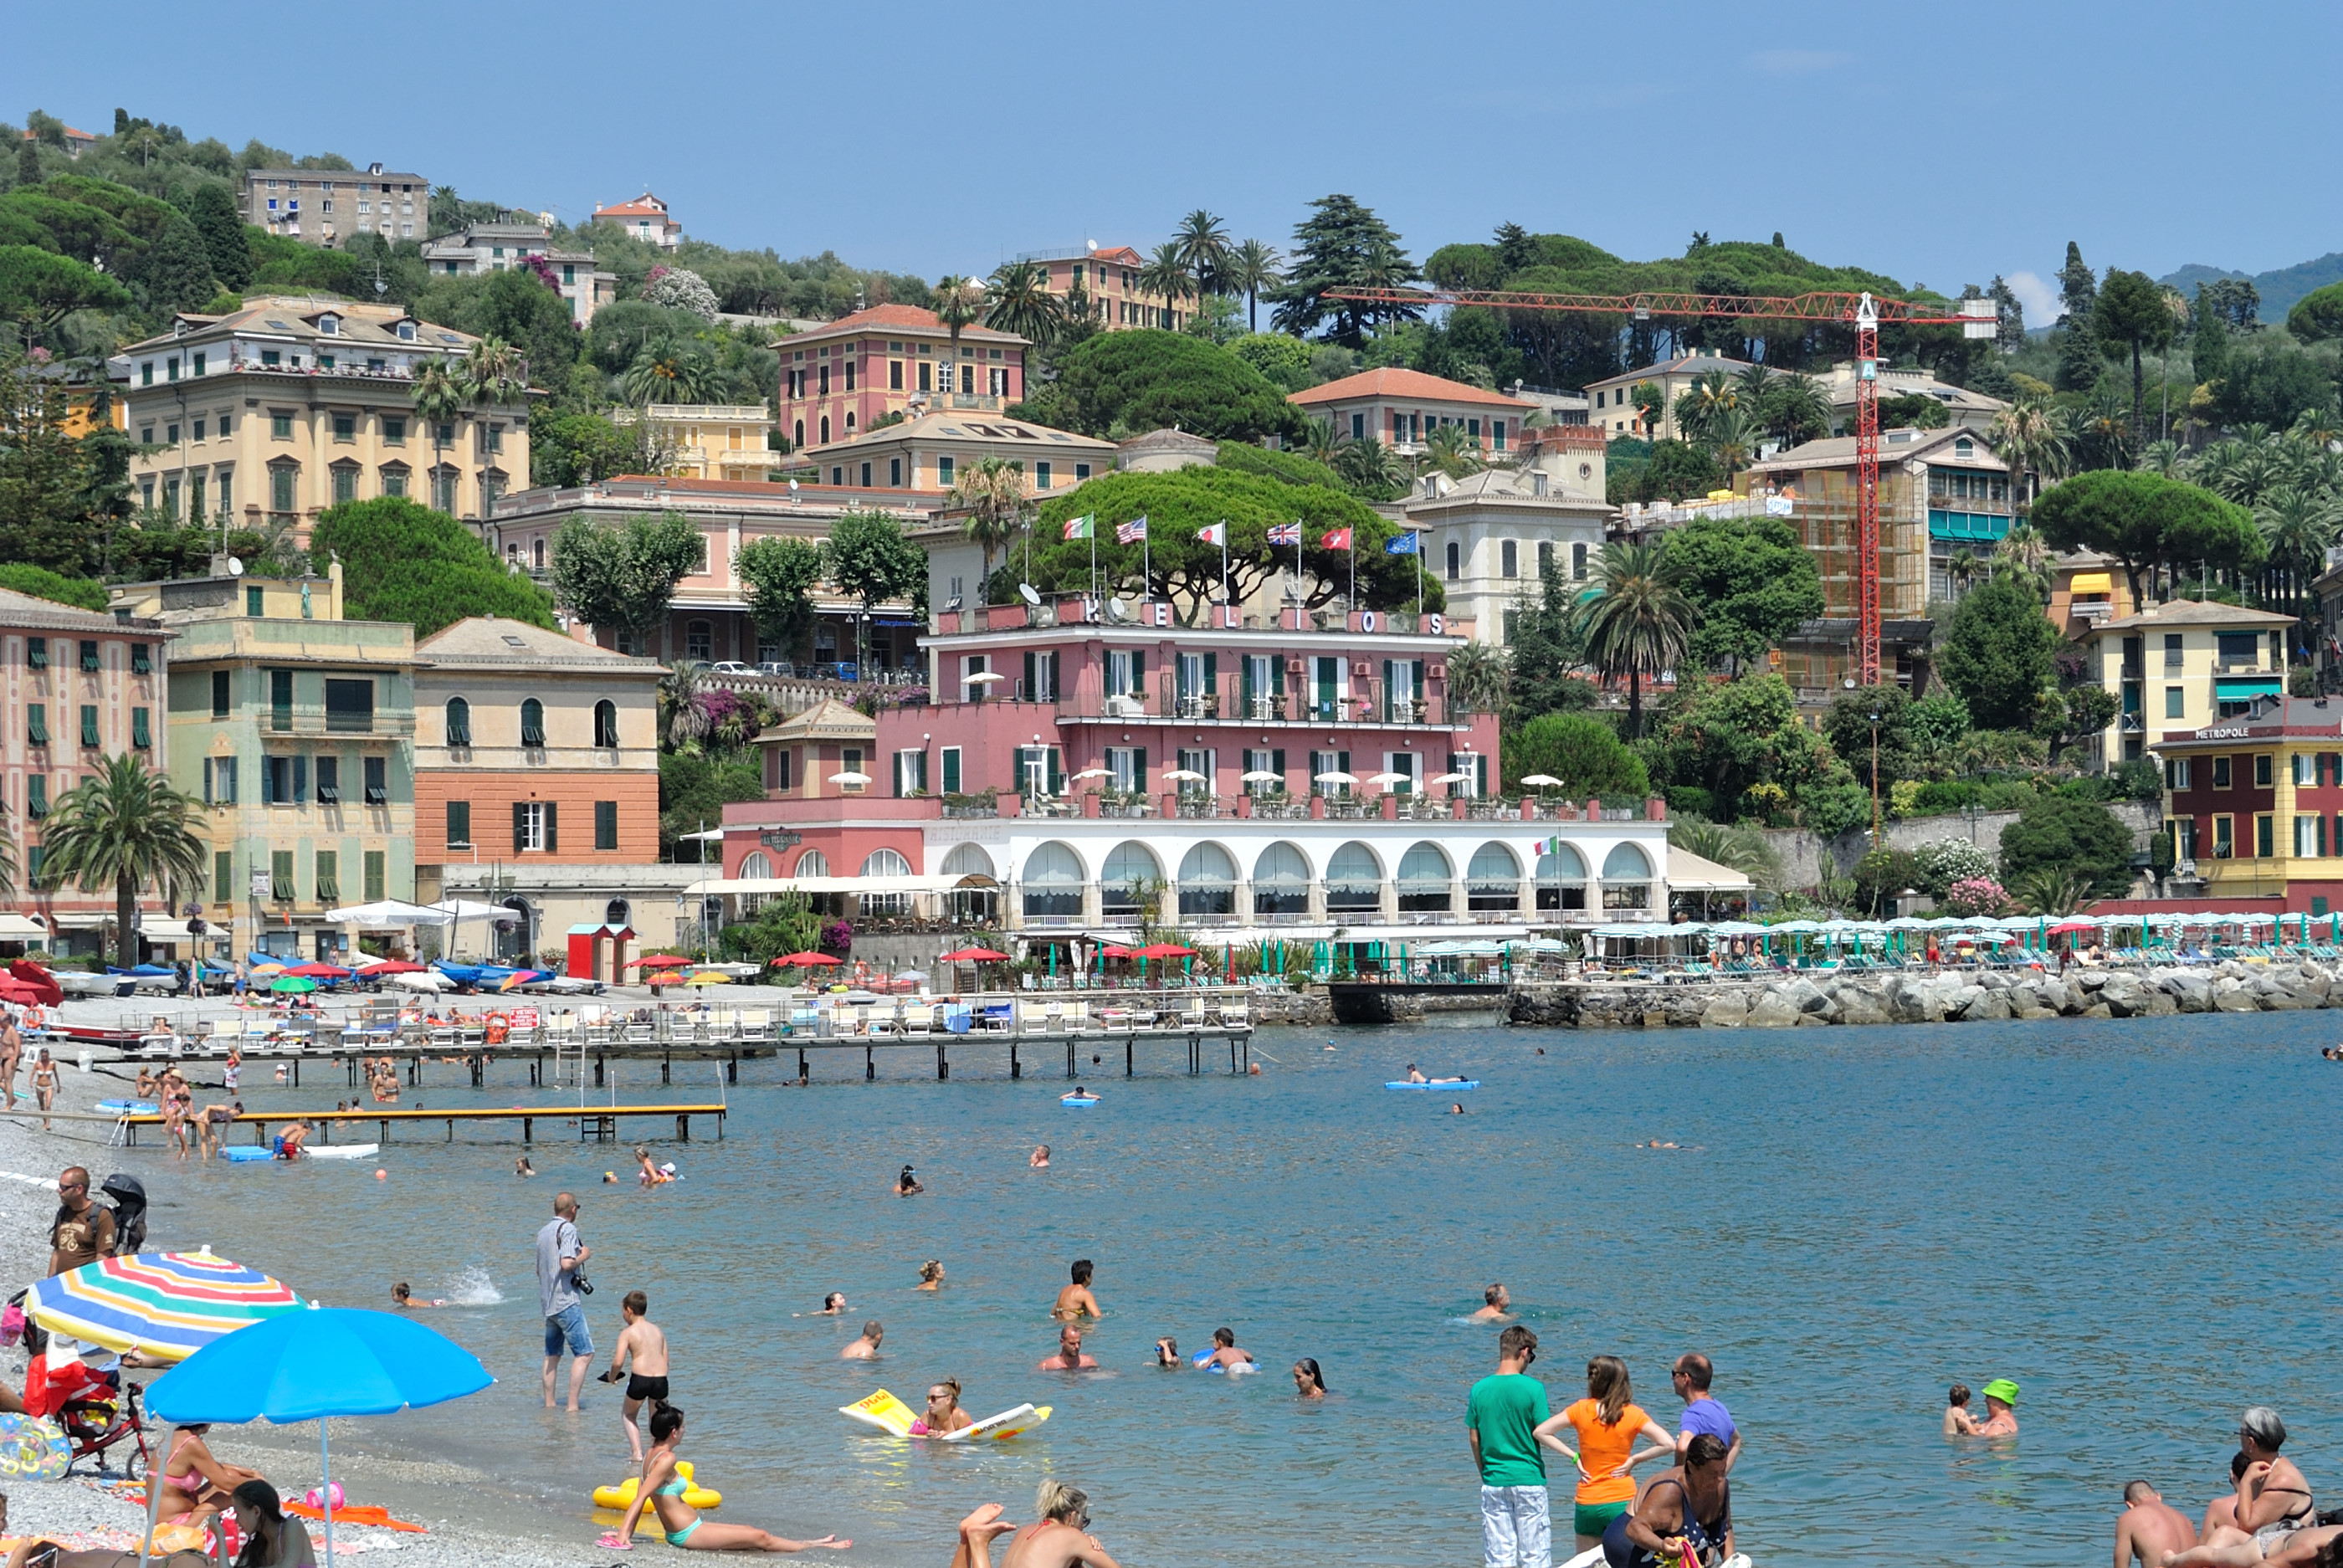 map of gulf coast with A Day Getaway To Coast Of The Dolphins Santa Margherita Ligure on A Day Getaway To Coast Of The Dolphins Santa Margherita Ligure furthermore 4653749004 additionally Climate of Texas likewise Sunsets together with GM GE.